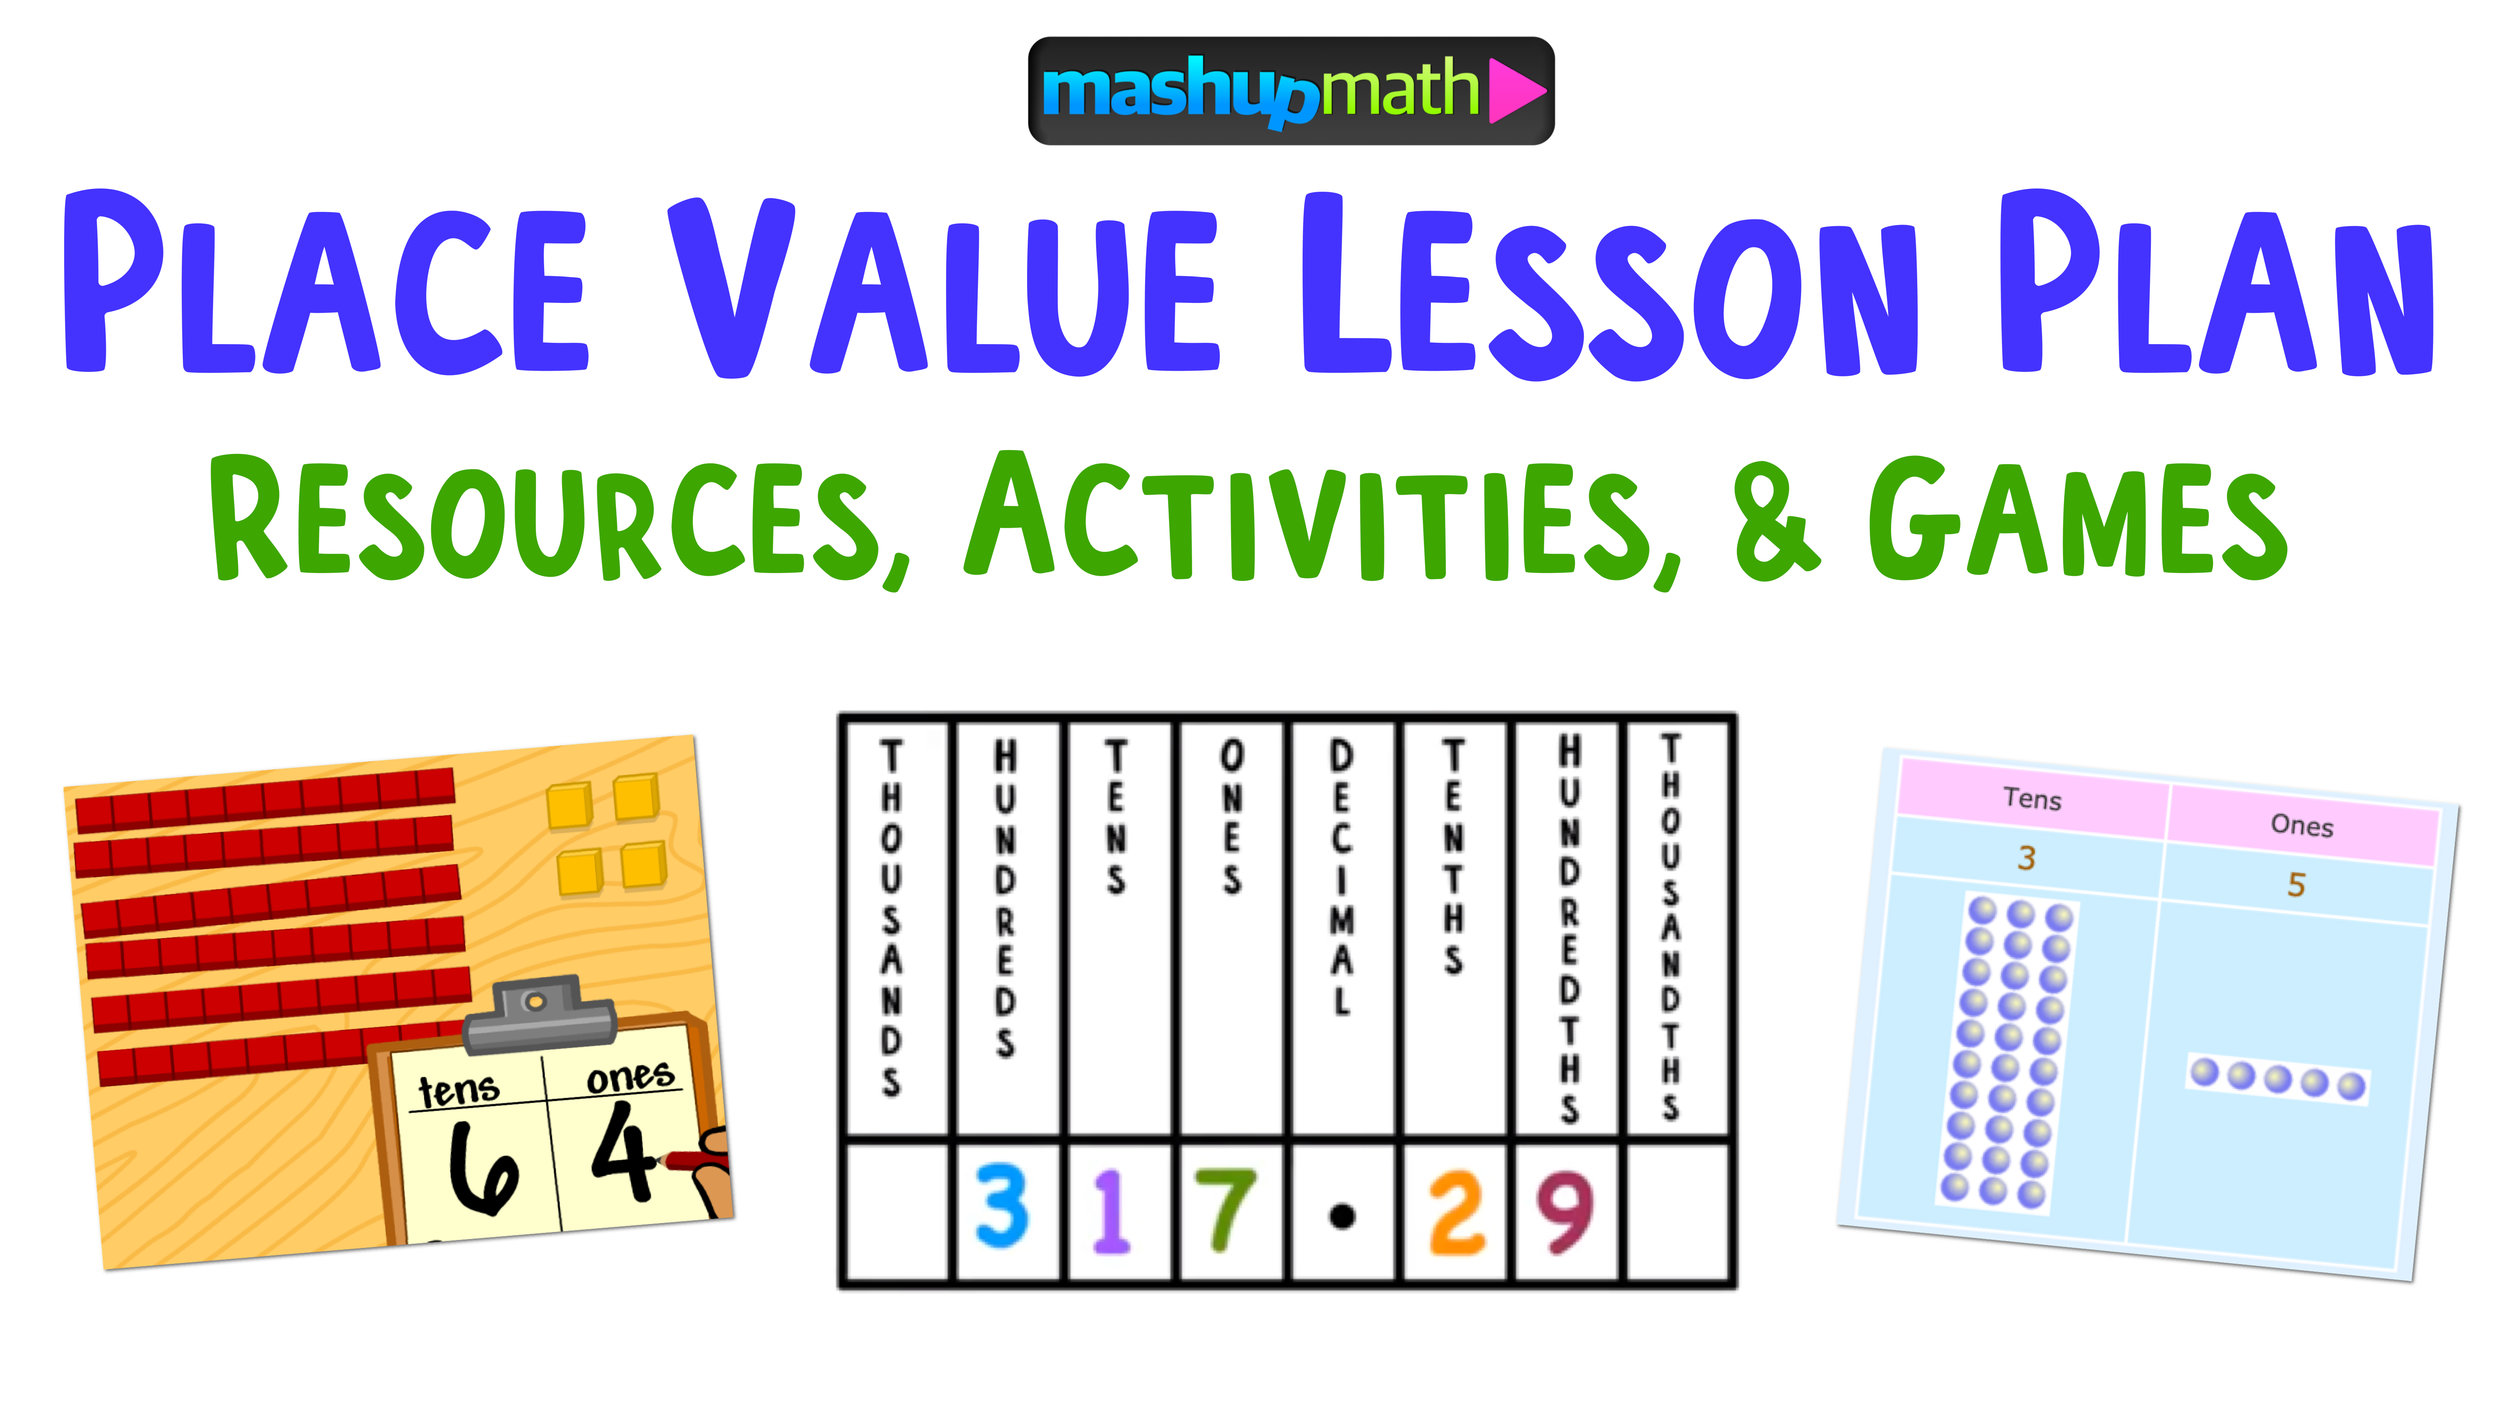 medium resolution of Place Value Lesson Plan Resources: The Best of The Best — Mashup Math